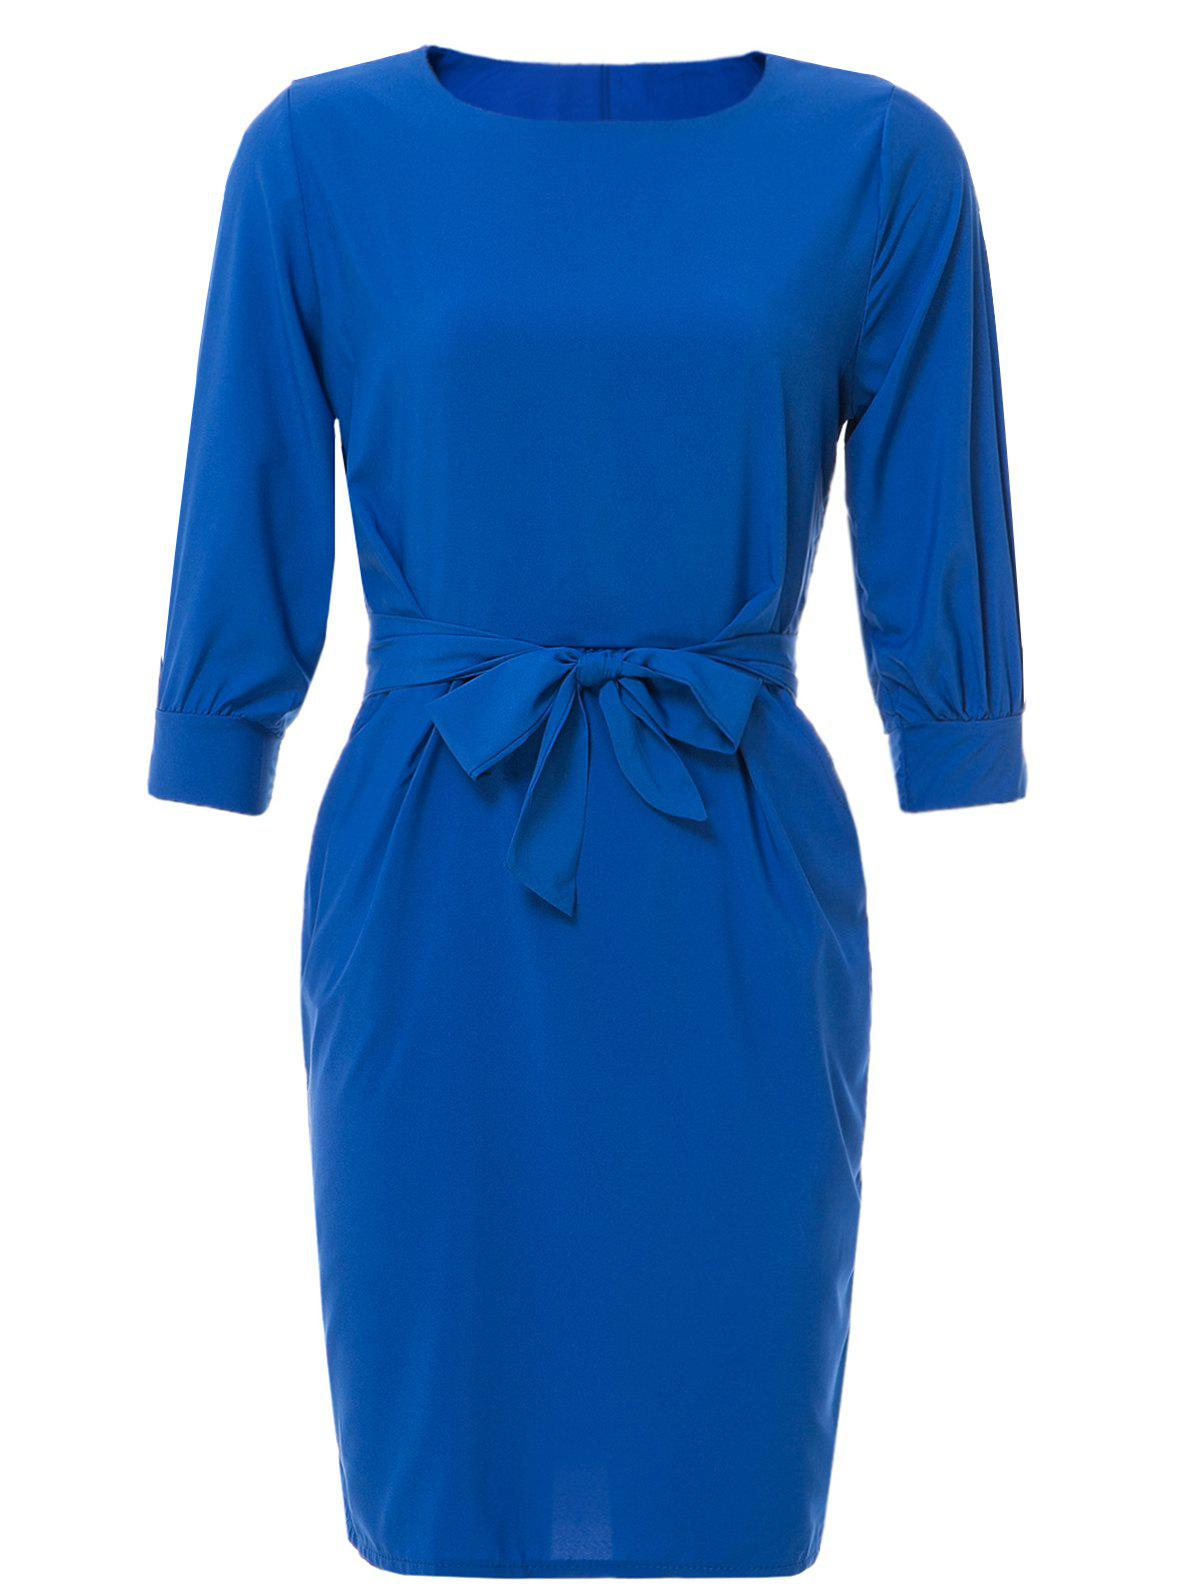 Sheath Boat Neck Dress With Belt - SAPPHIRE BLUE L